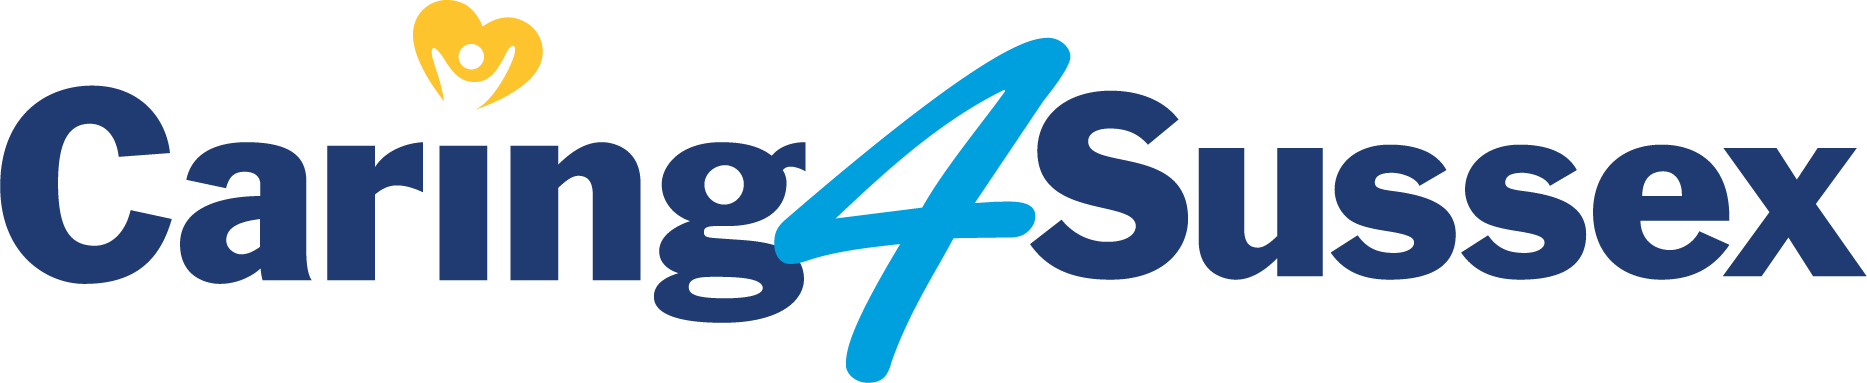 Caring 4 Sussex logo